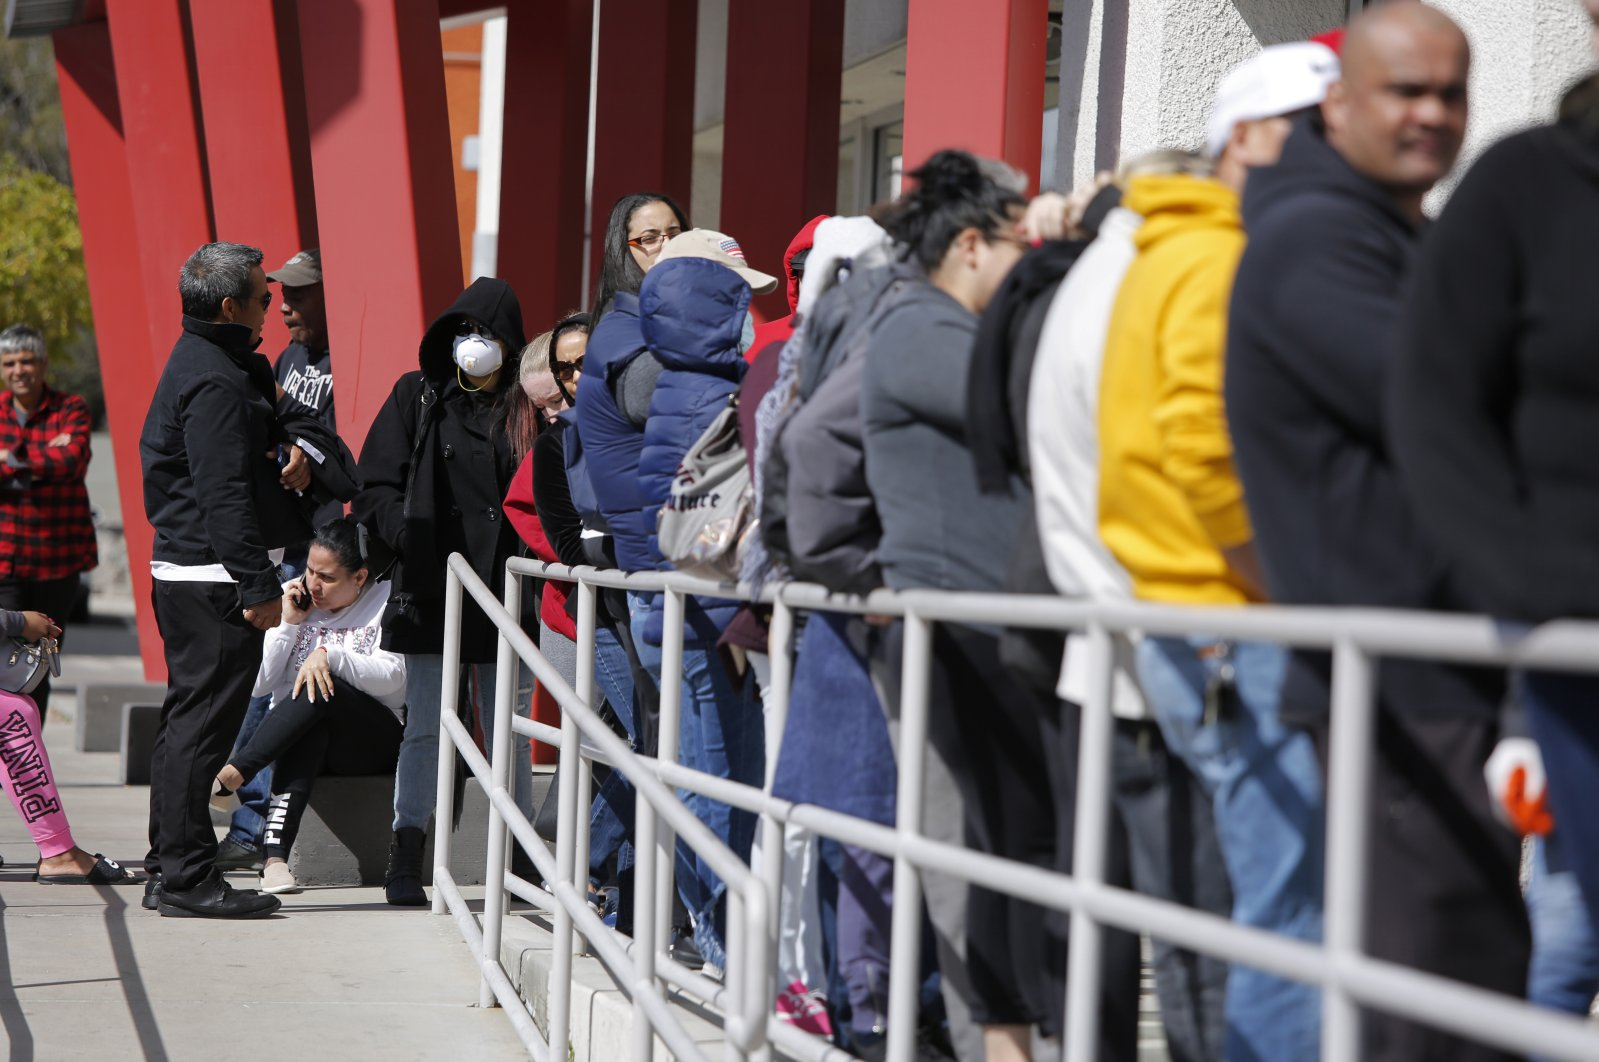 People wait in line for help with unemployment benefits at the One-Stop Career Center in Las Vegas, Nevada, U.S., March 17, 2020. (AP Photo)